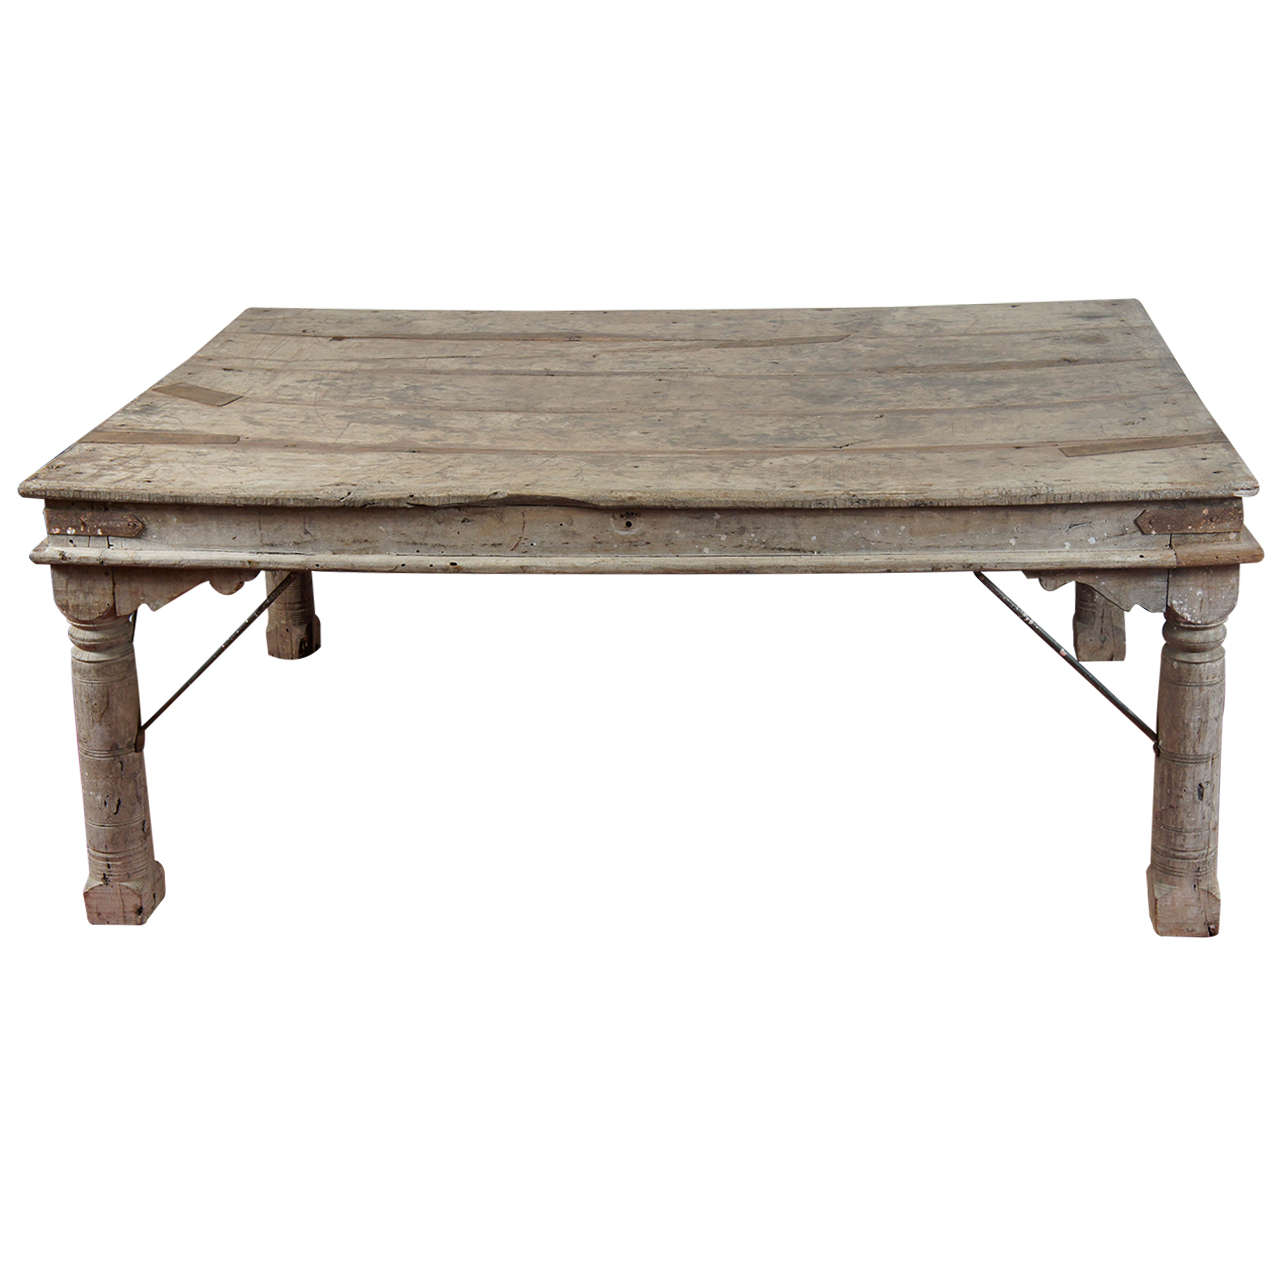 indian plank teak dining table at 1stdibs. Black Bedroom Furniture Sets. Home Design Ideas